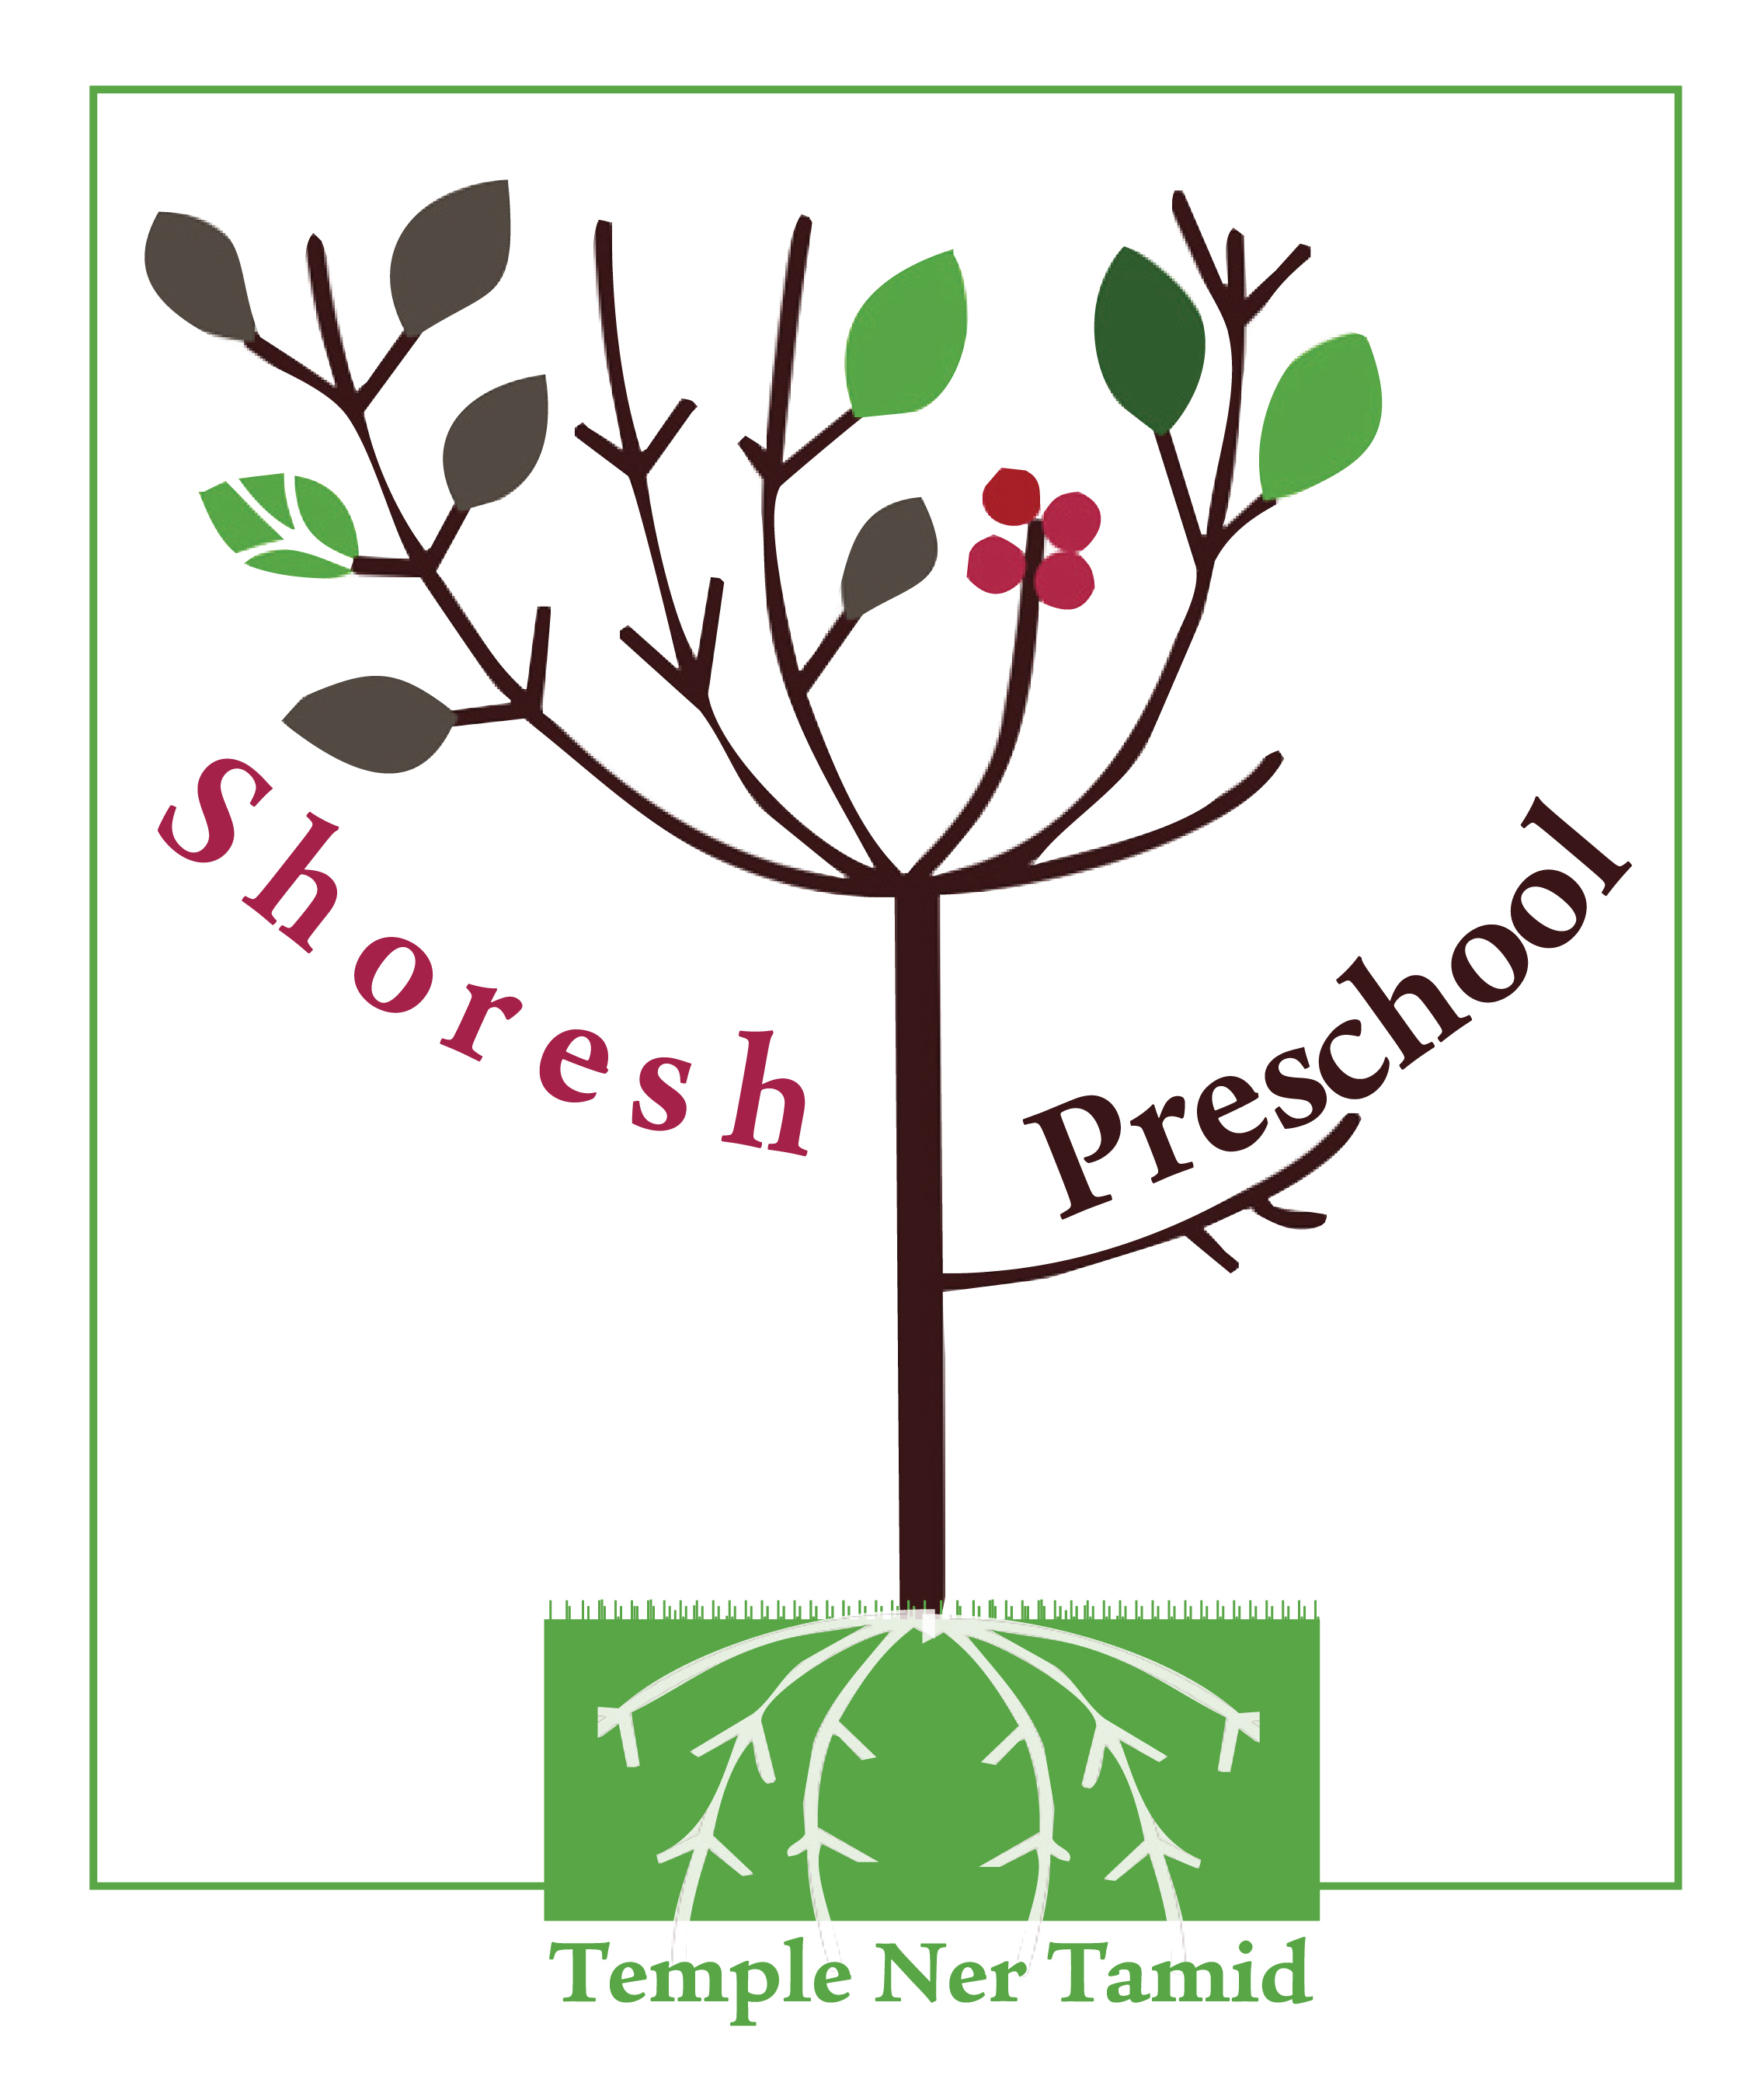 Shoresh Preschool at Temple Ner Tamid